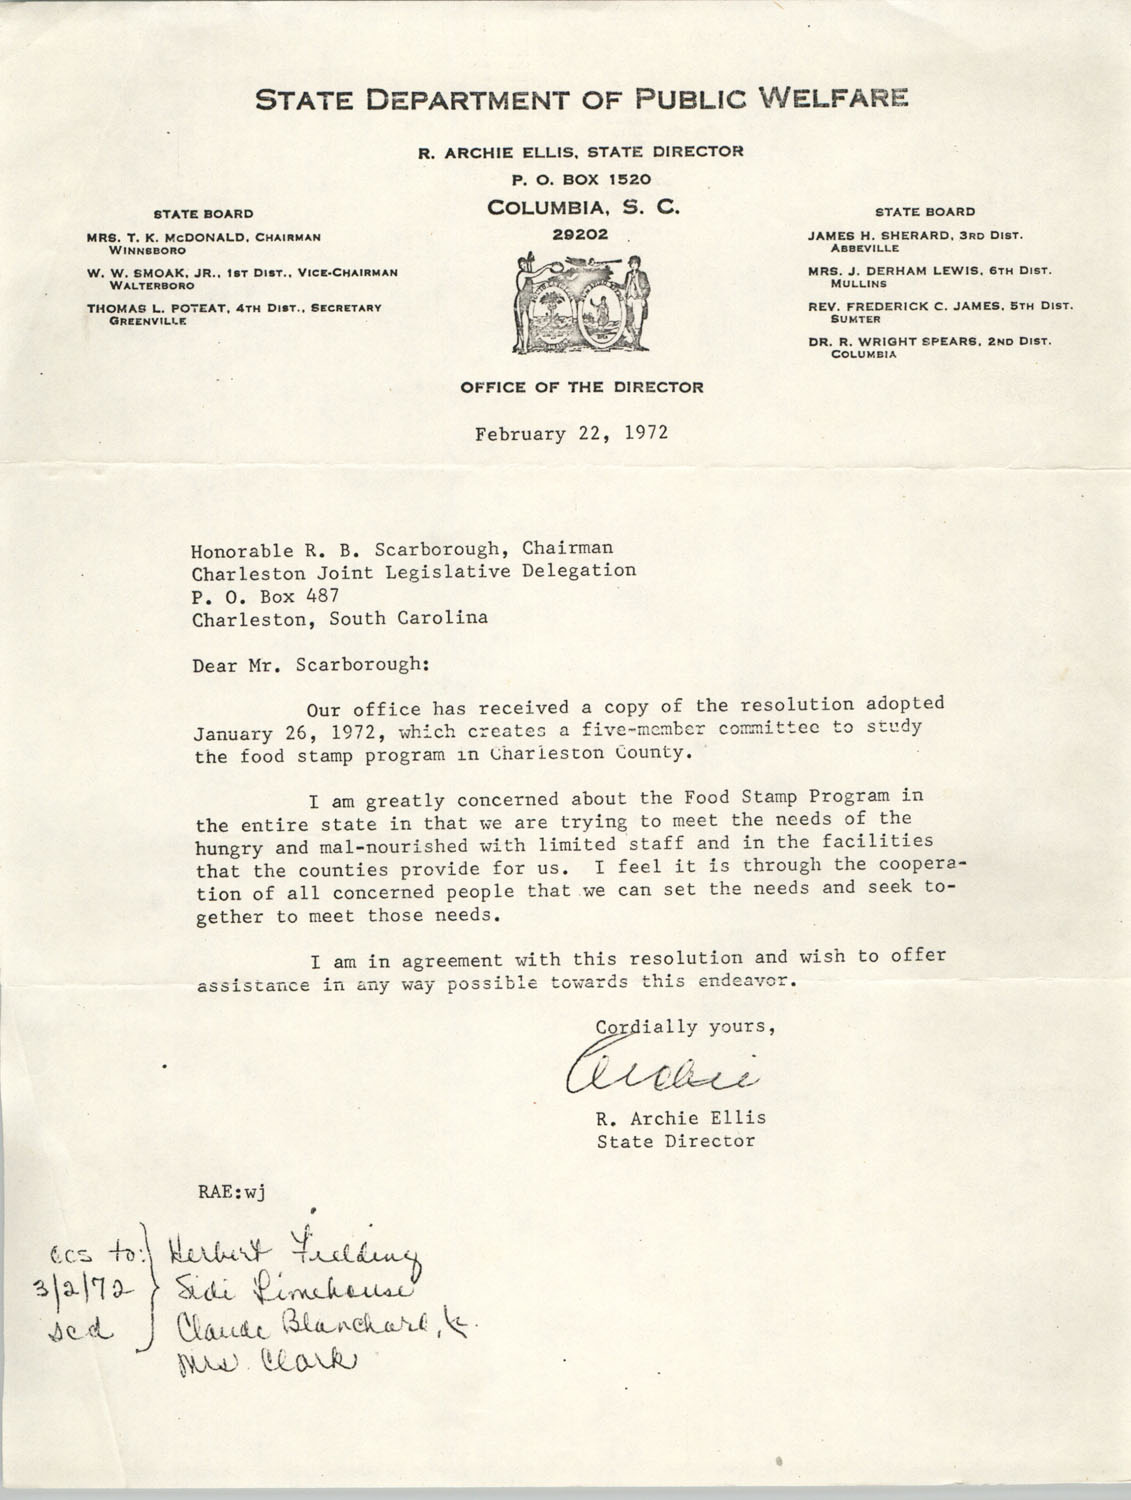 Letter from R. Archie Ellis to Honorable R. B. Scarborough, February 22, 1972